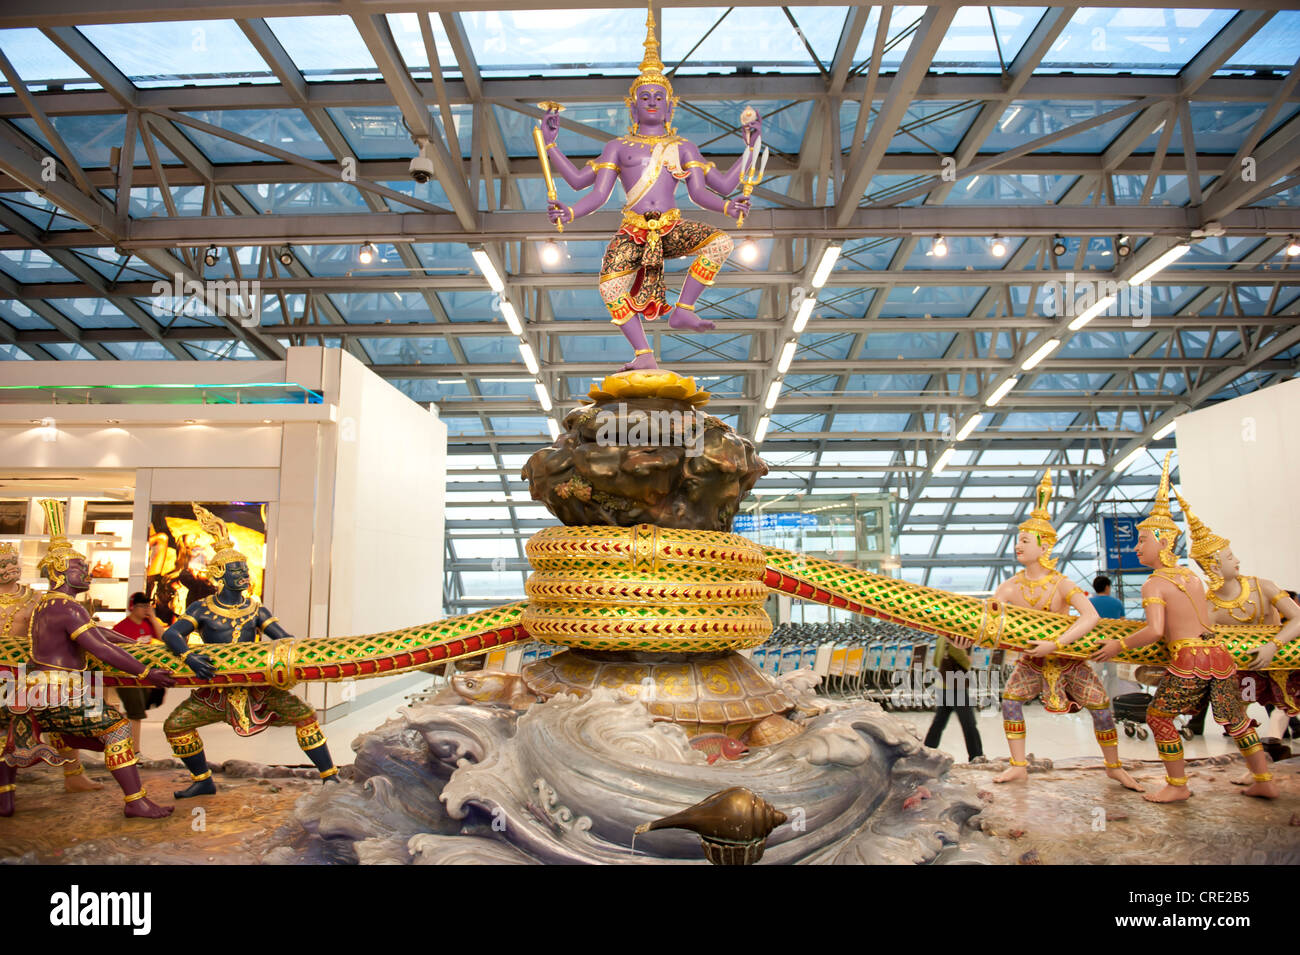 Modern group of statues, Hinduism, scene from the Ramayana epic, the churning of the milk ocean, God Shiva sitting - Stock Image